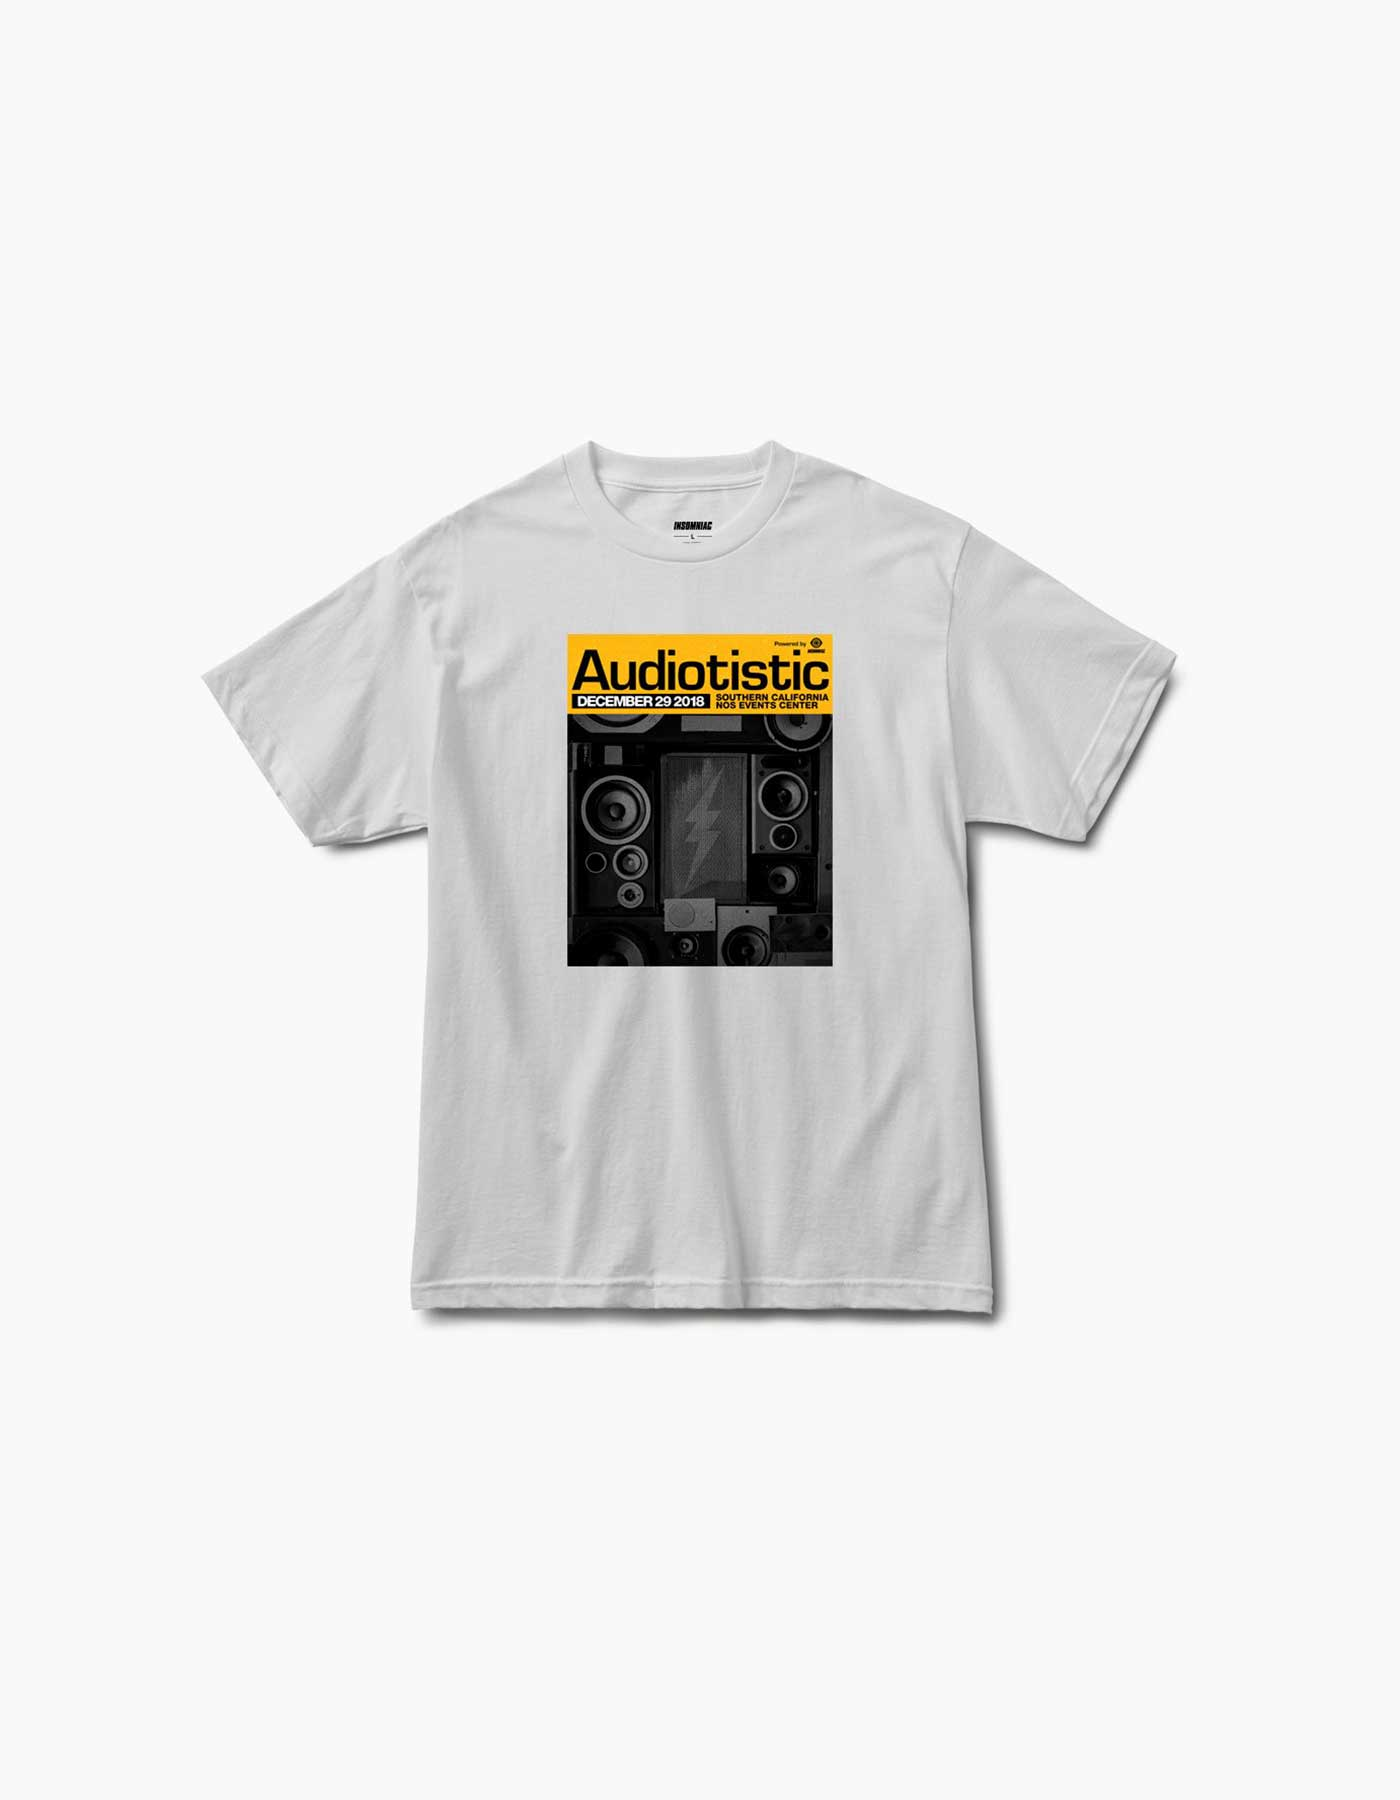 Audiotistic 2018 - So Cal - Socal 2018 Line Up Tee White